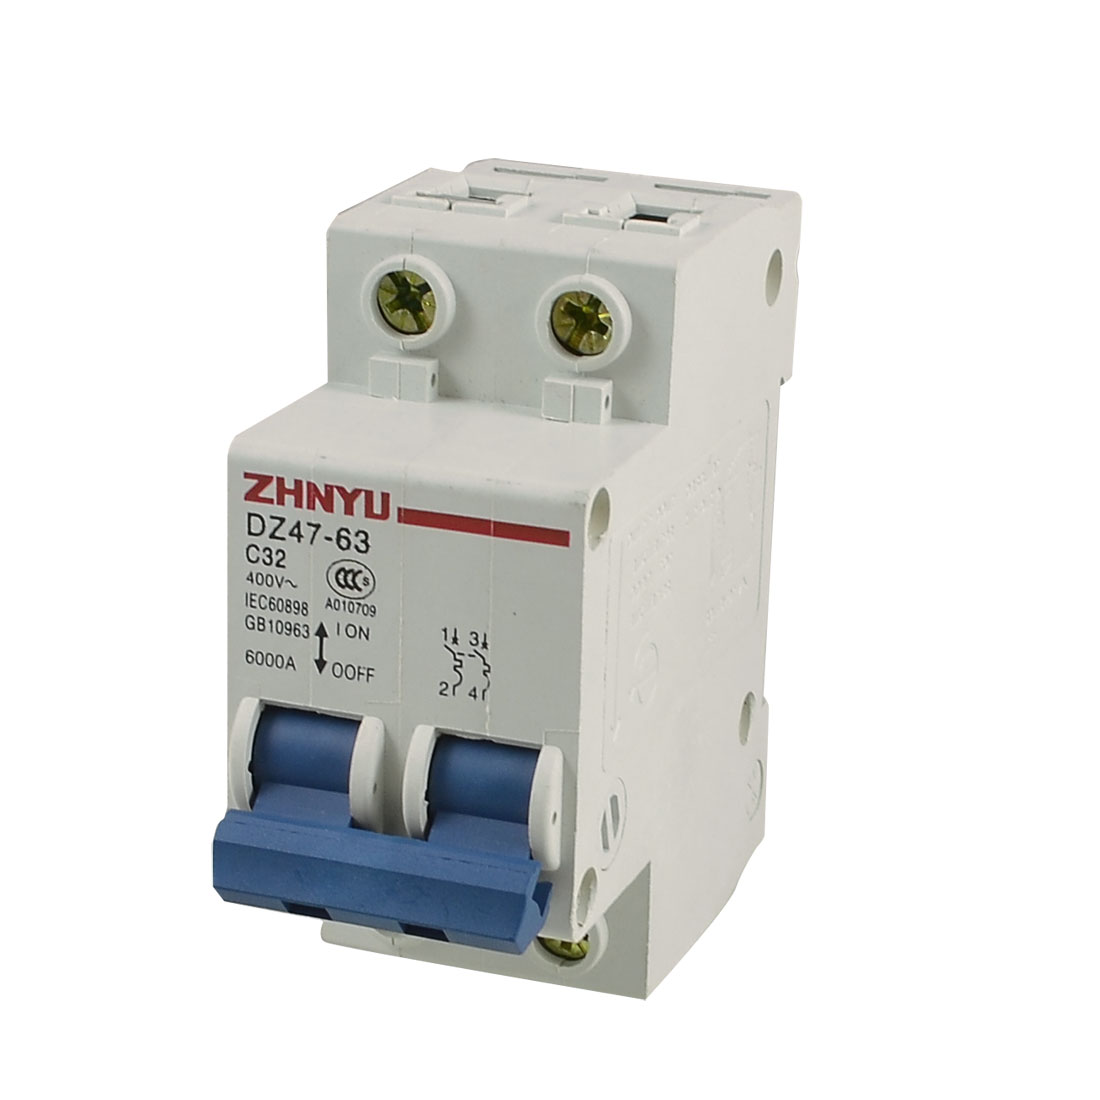 Unique Bargains 6000a Breaking Capacity 2p Mini Circuit Breaker Ac Why My Trips The When I Switch It On Sunrise 400v Dz47 63 C32